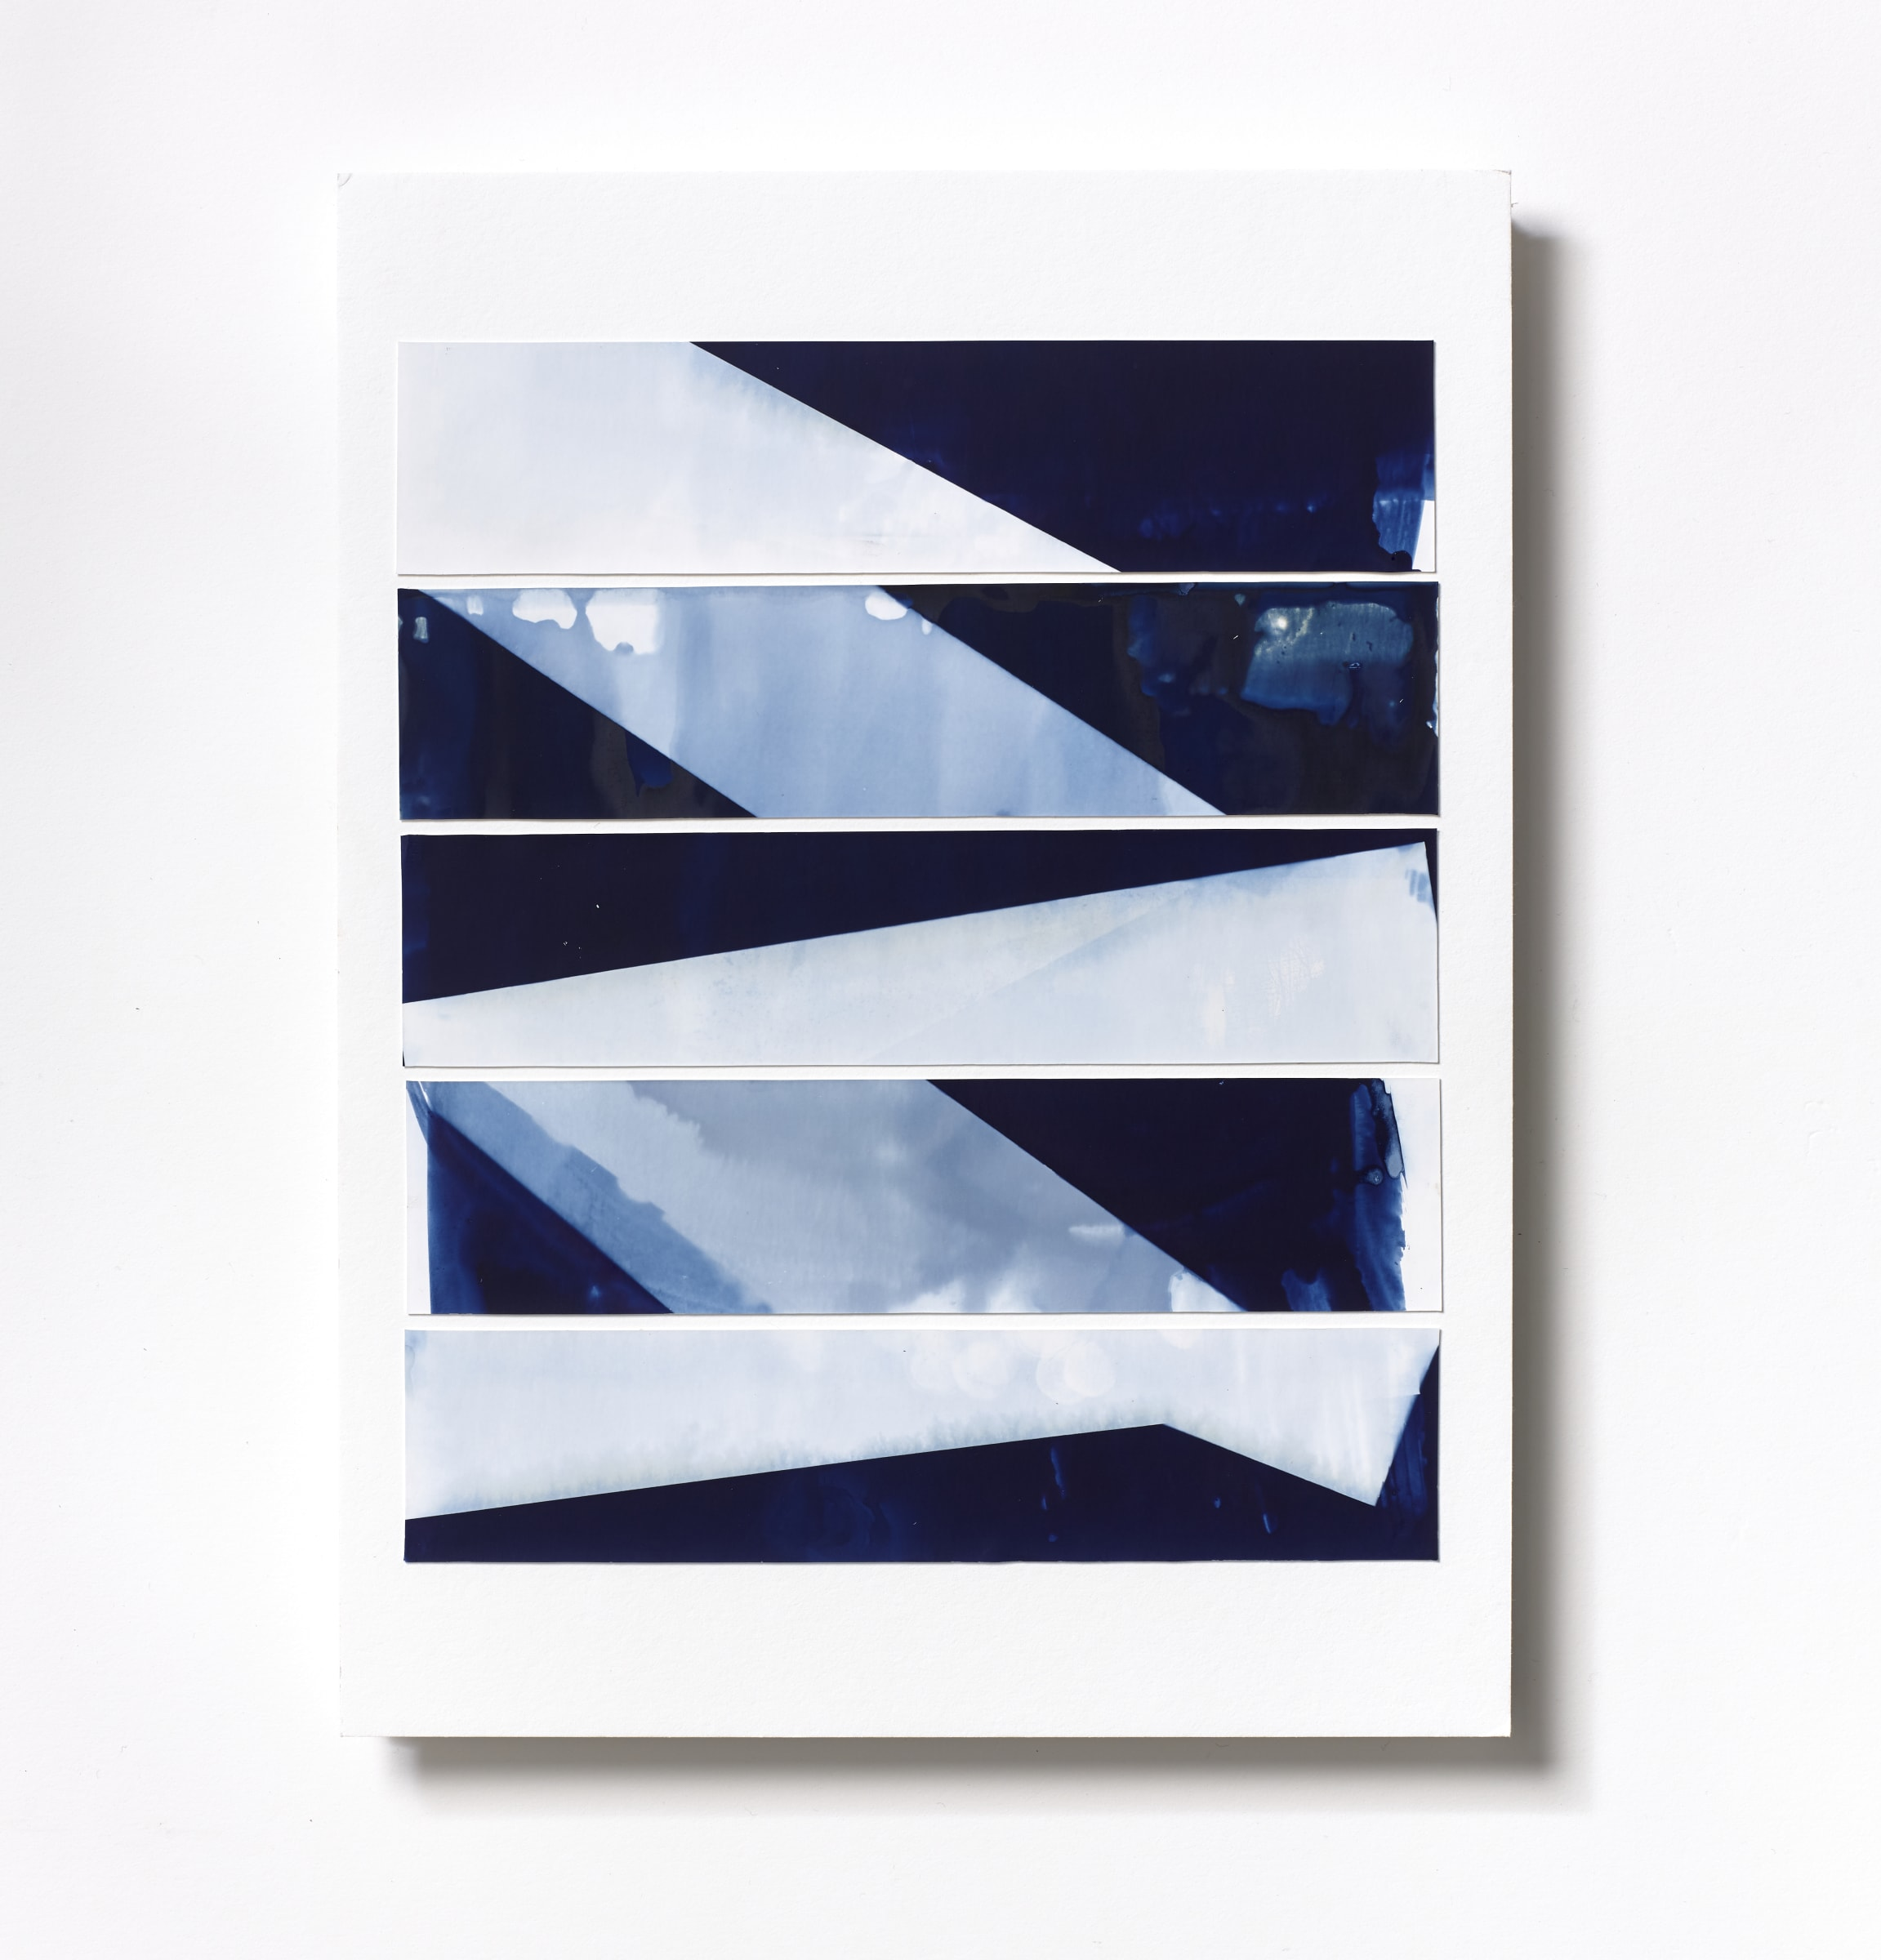 """<span class=""""link fancybox-details-link""""><a href=""""/content/feature/218/artworks563/"""">View Detail Page</a></span><div class=""""medium"""">Cyanotype Collage of five handpainted 1 3/4"""" x 7 7/8"""" cyanotype photograms on a 12 x 9 inch 8-ply museum board<br /> Print only<br /> Unique</div> <div class=""""dimensions"""">30.5 x 22.9 cm<br /> 12 x 9 in</div>"""